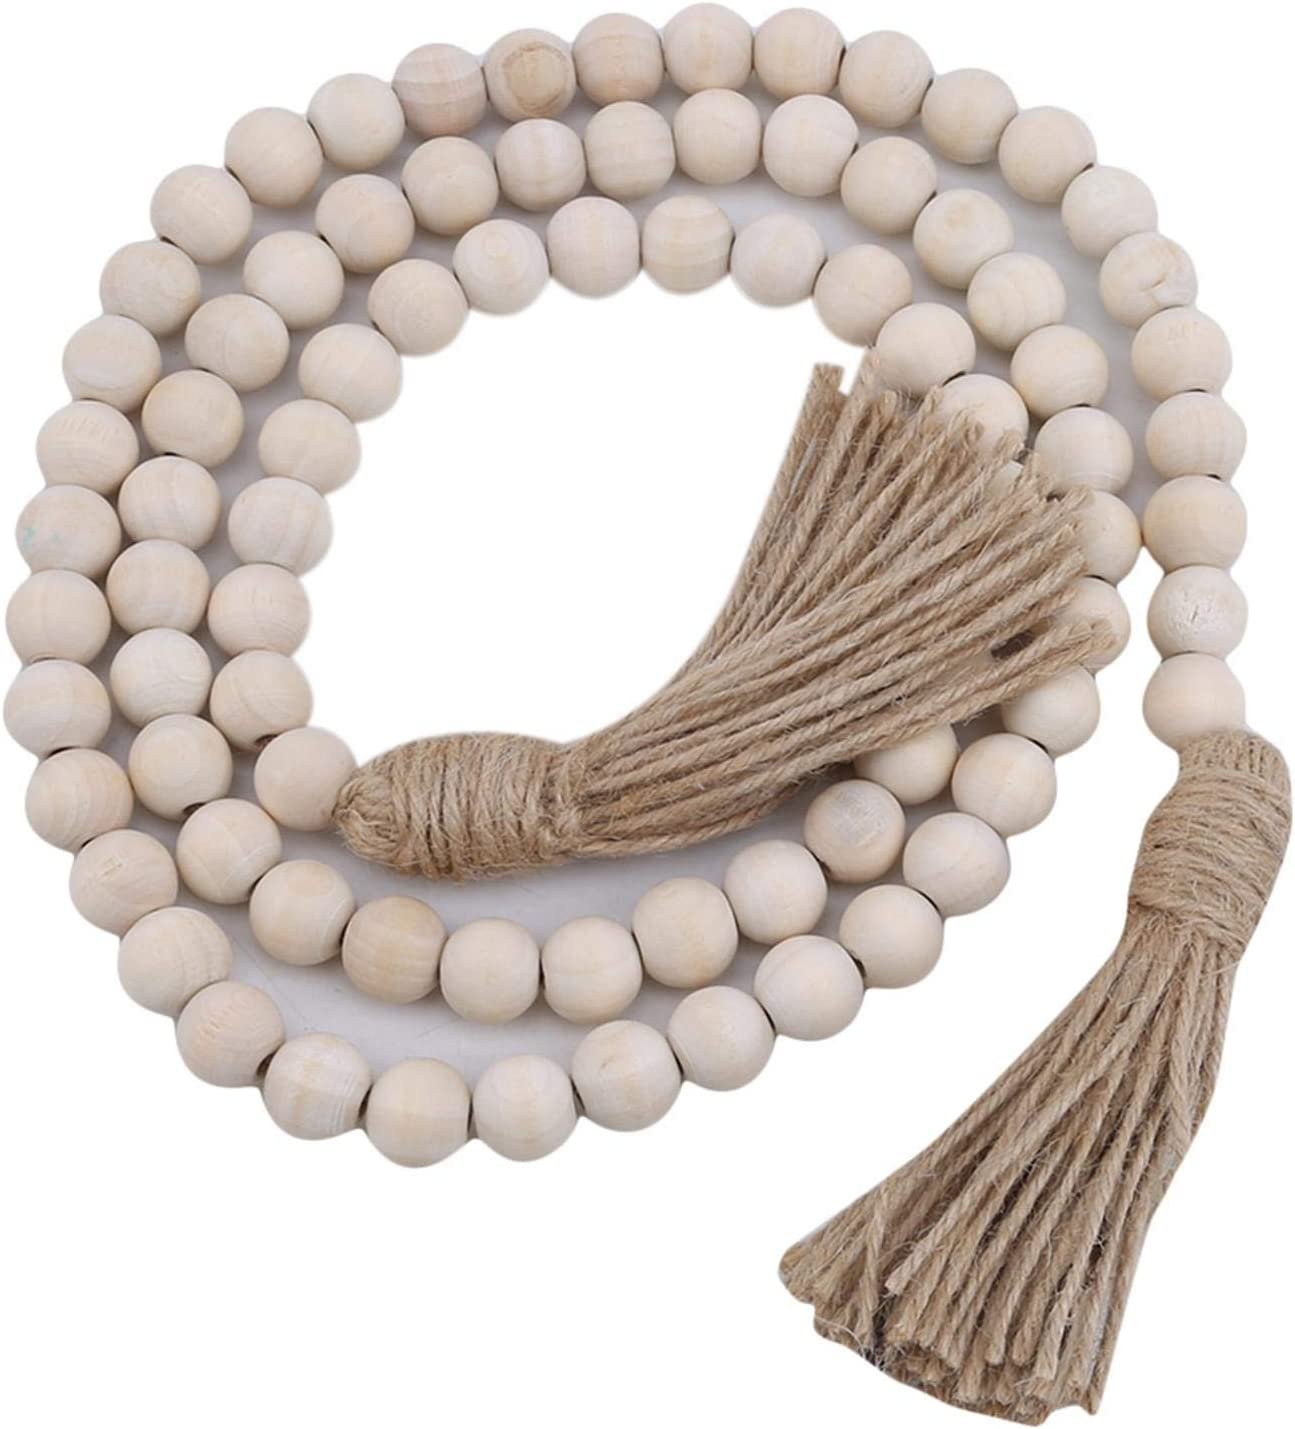 BoloLi Farmhouse Wooden Beads Translated Wall Hanging Tassel Ornaments Sale item with